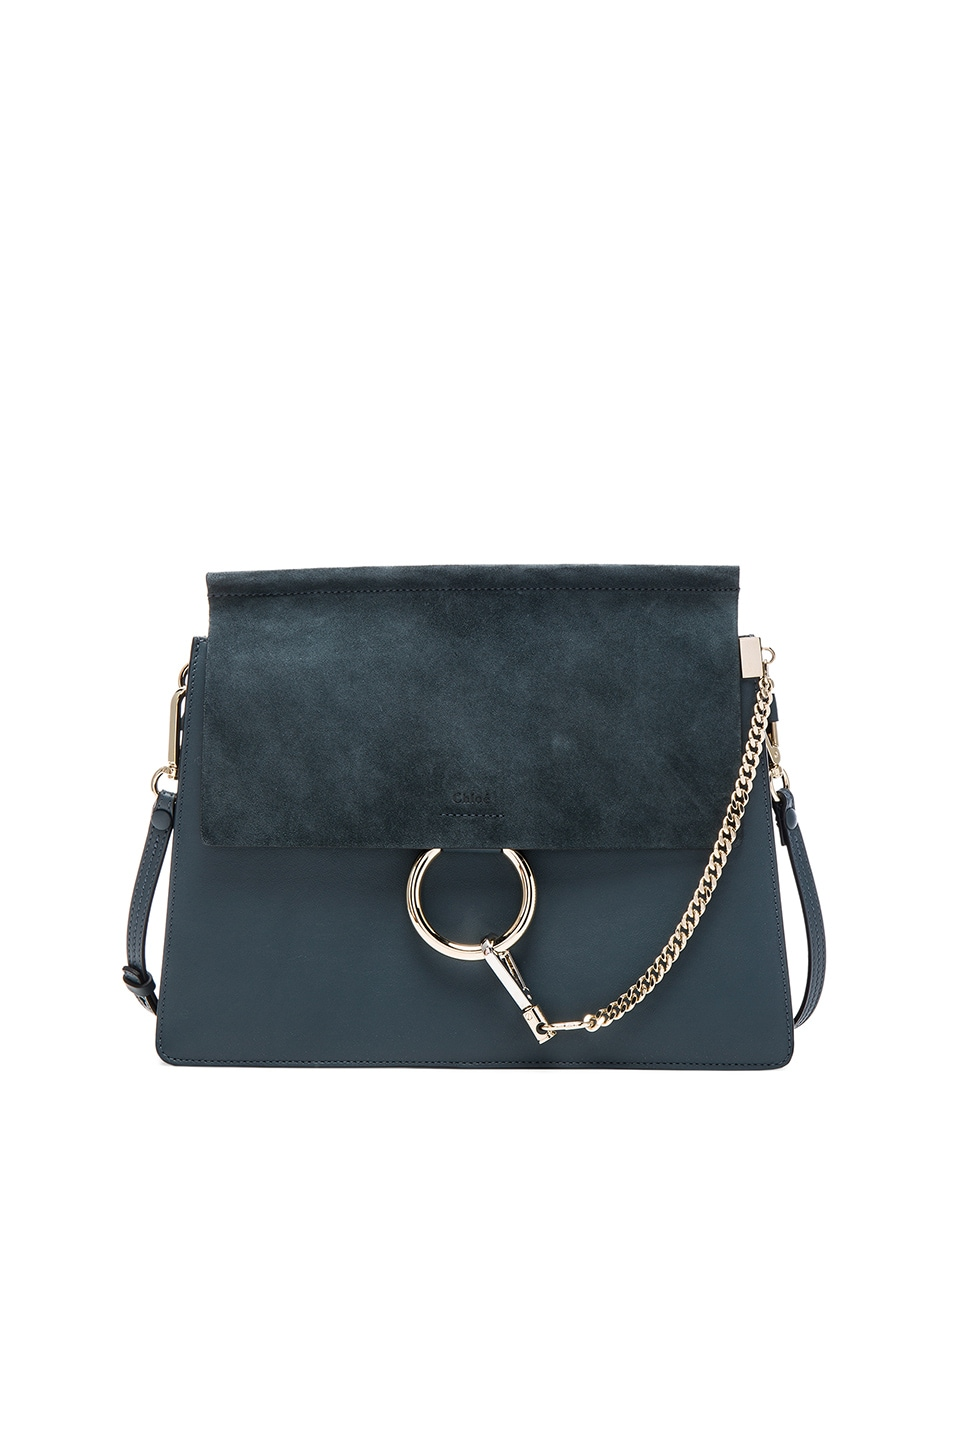 Image 1 of Chloe Medium Faye Bag in Silver Blue